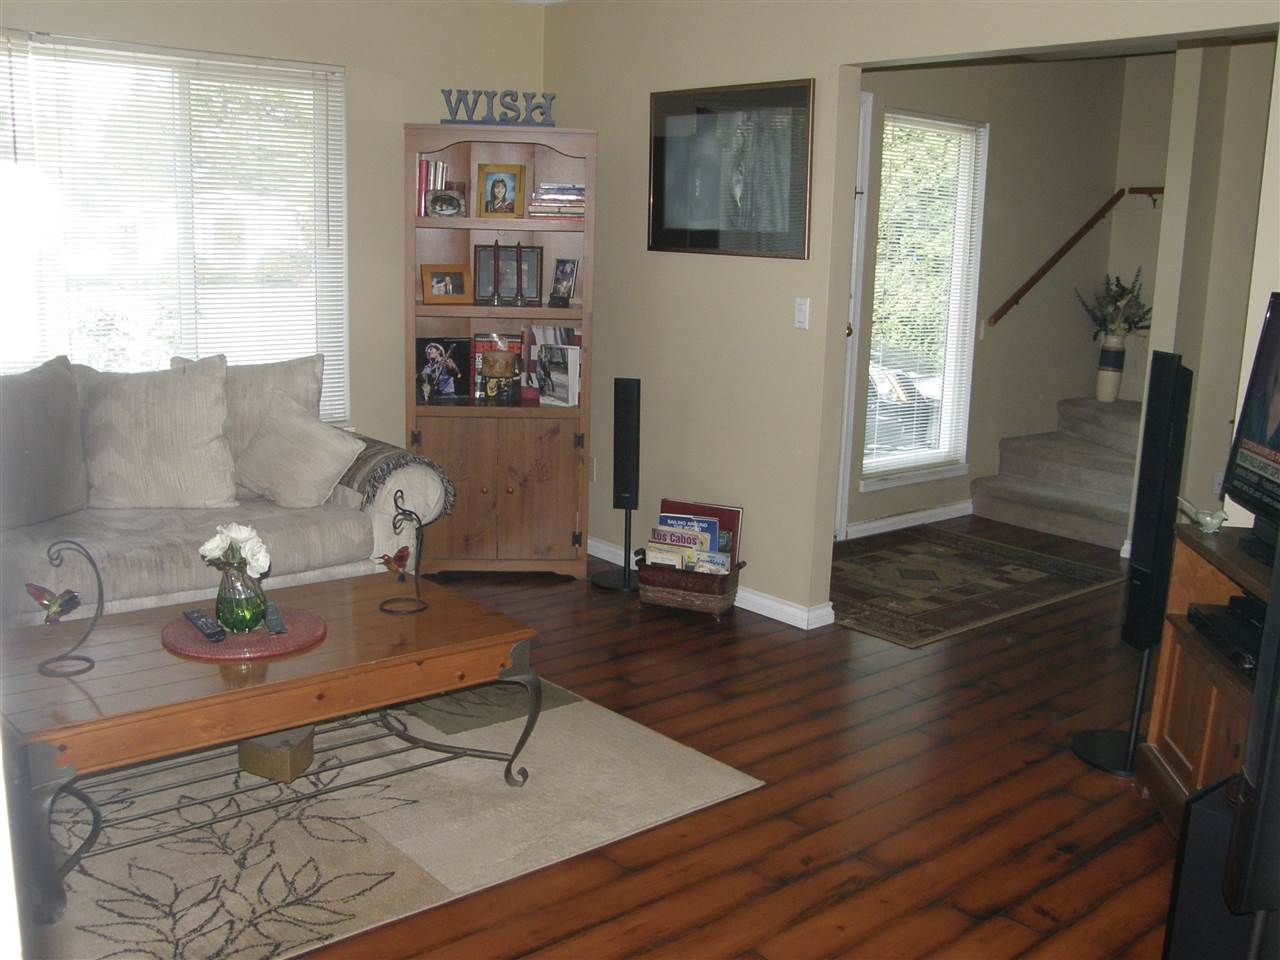 Photo 4: Photos: 1830 REEVES Place in Abbotsford: Central Abbotsford House for sale : MLS®# R2486642